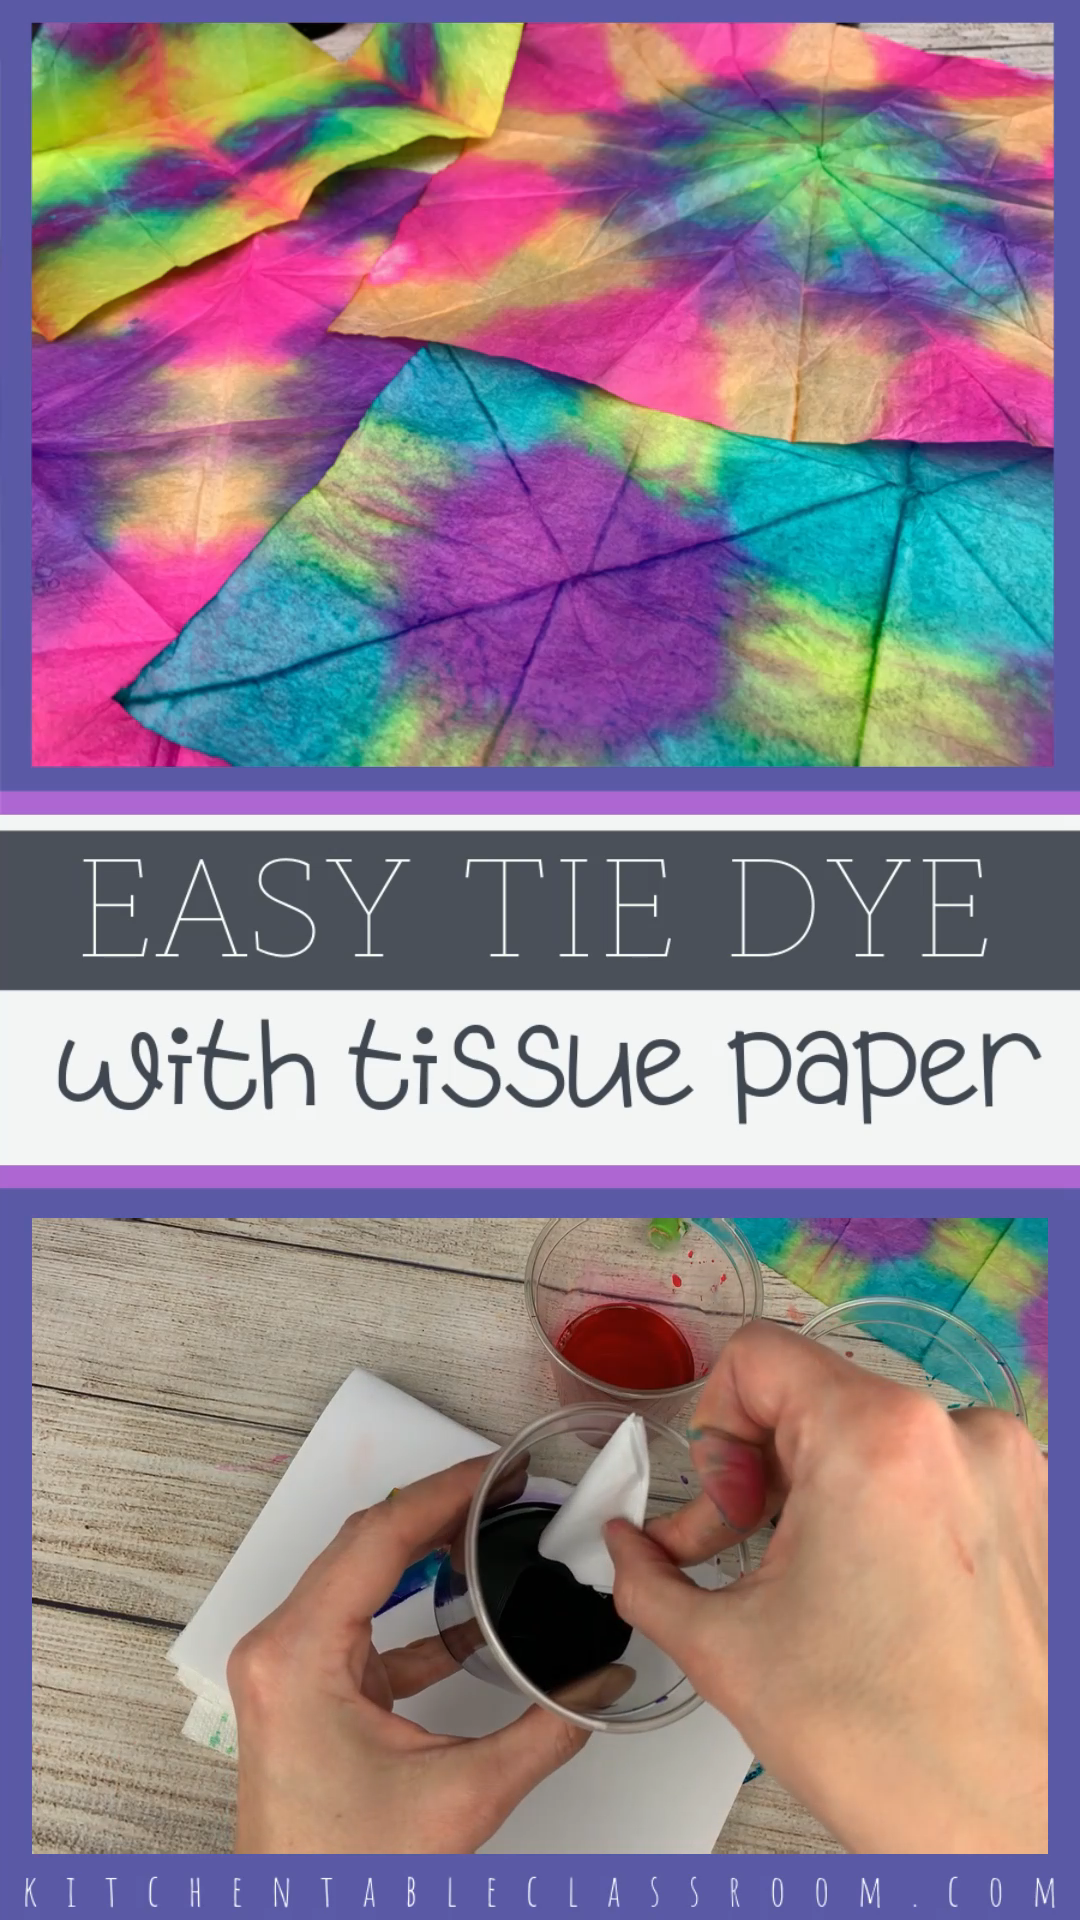 Easy Tie Dye with Tissue Paper